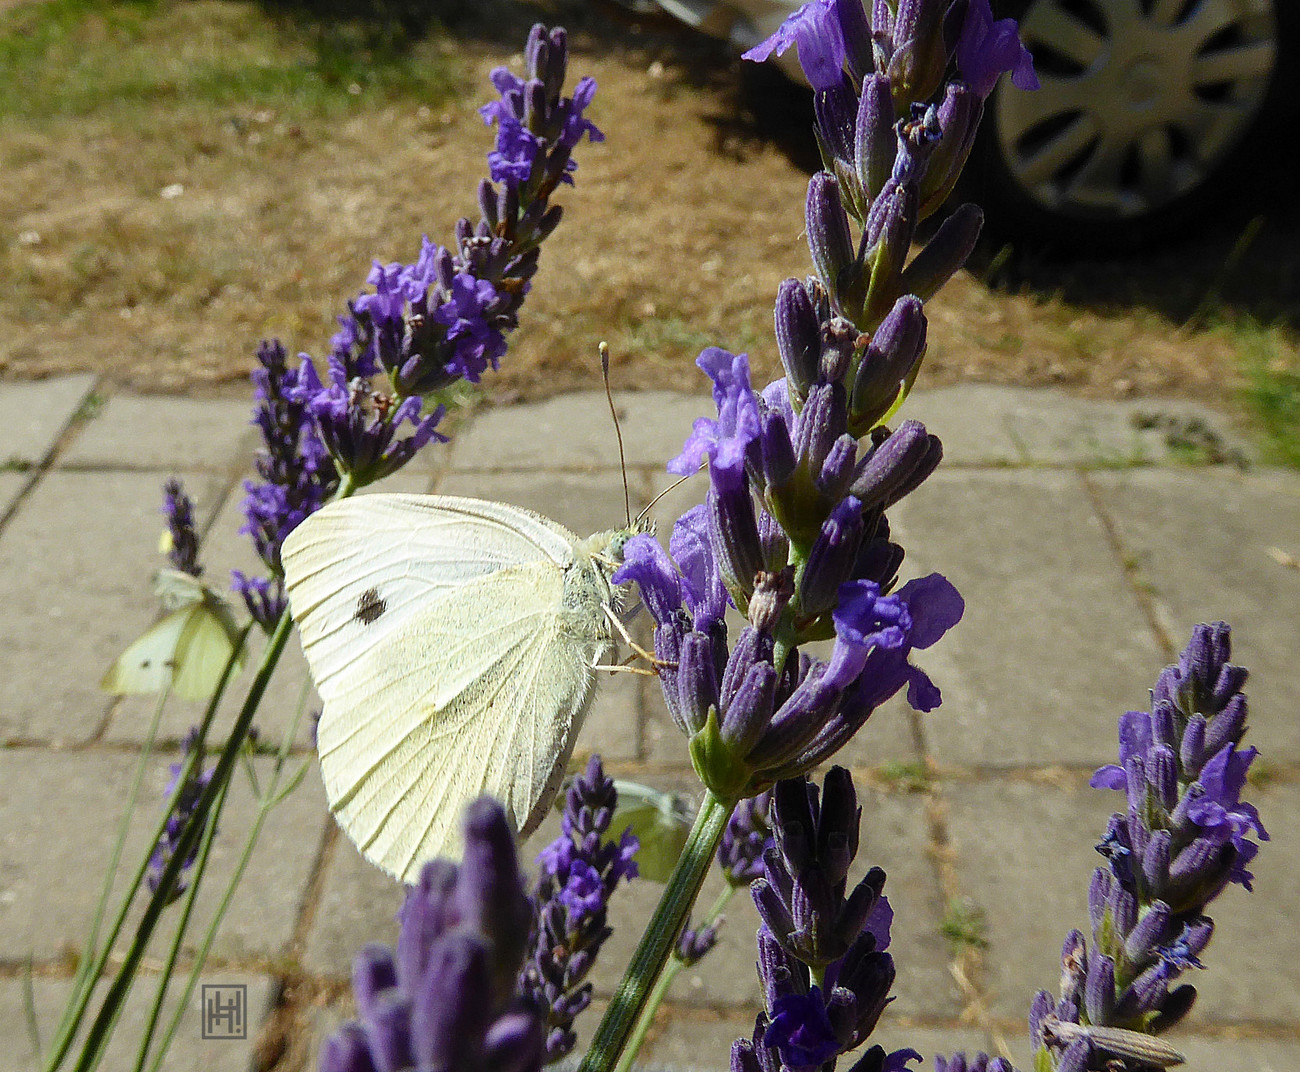 Butterfly on Lavender. For Andrea (durleybeachbum)